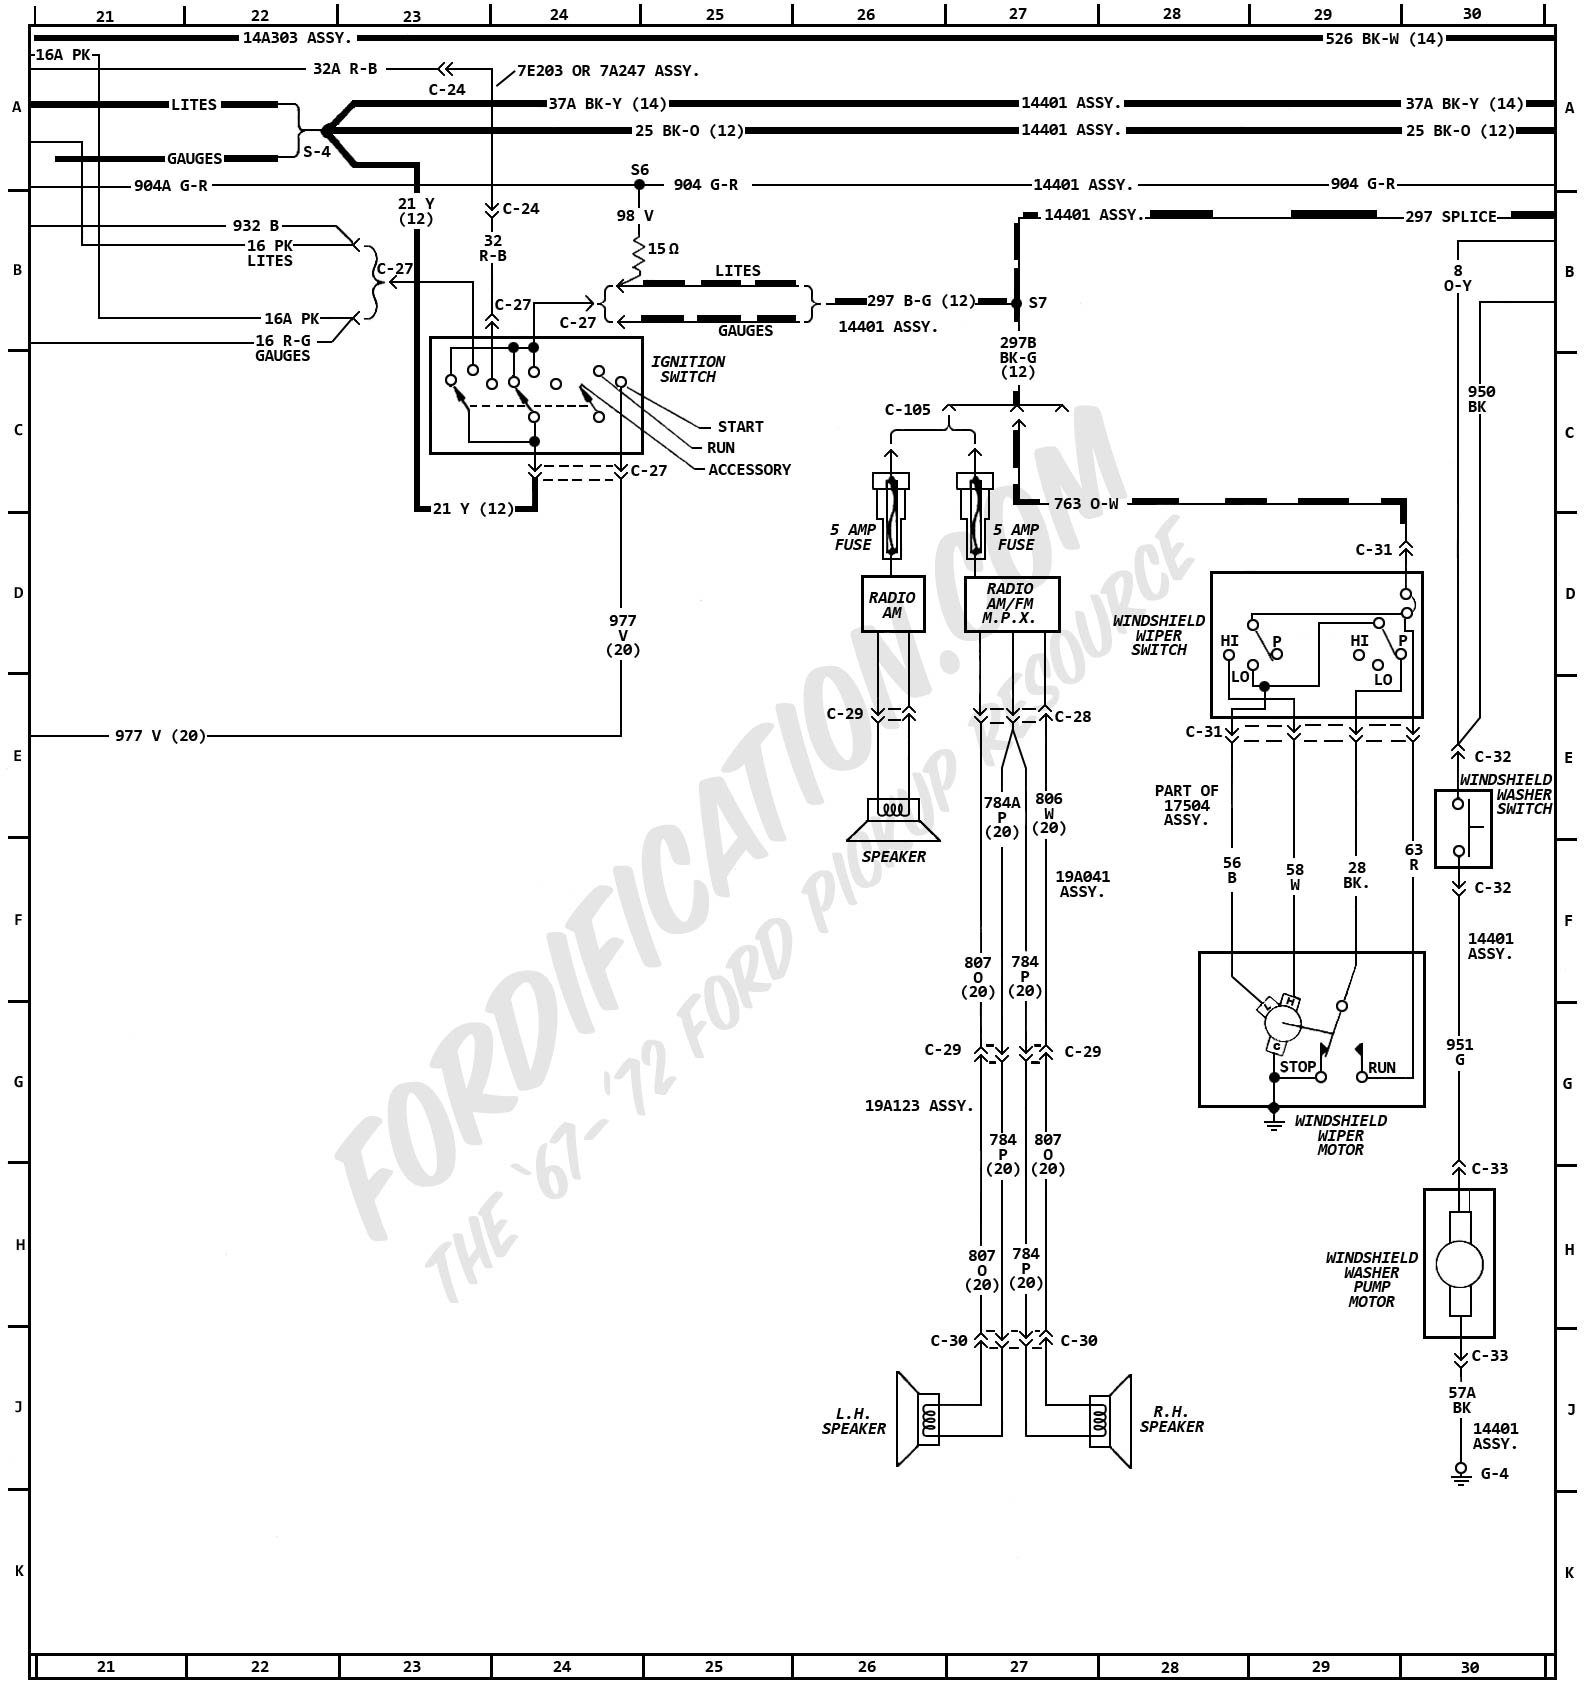 1990 ford wiring diagram wiring diagram for 1992 ford l 8000 wiring diagram for 1992 ford 1990 ford l8000 wiring